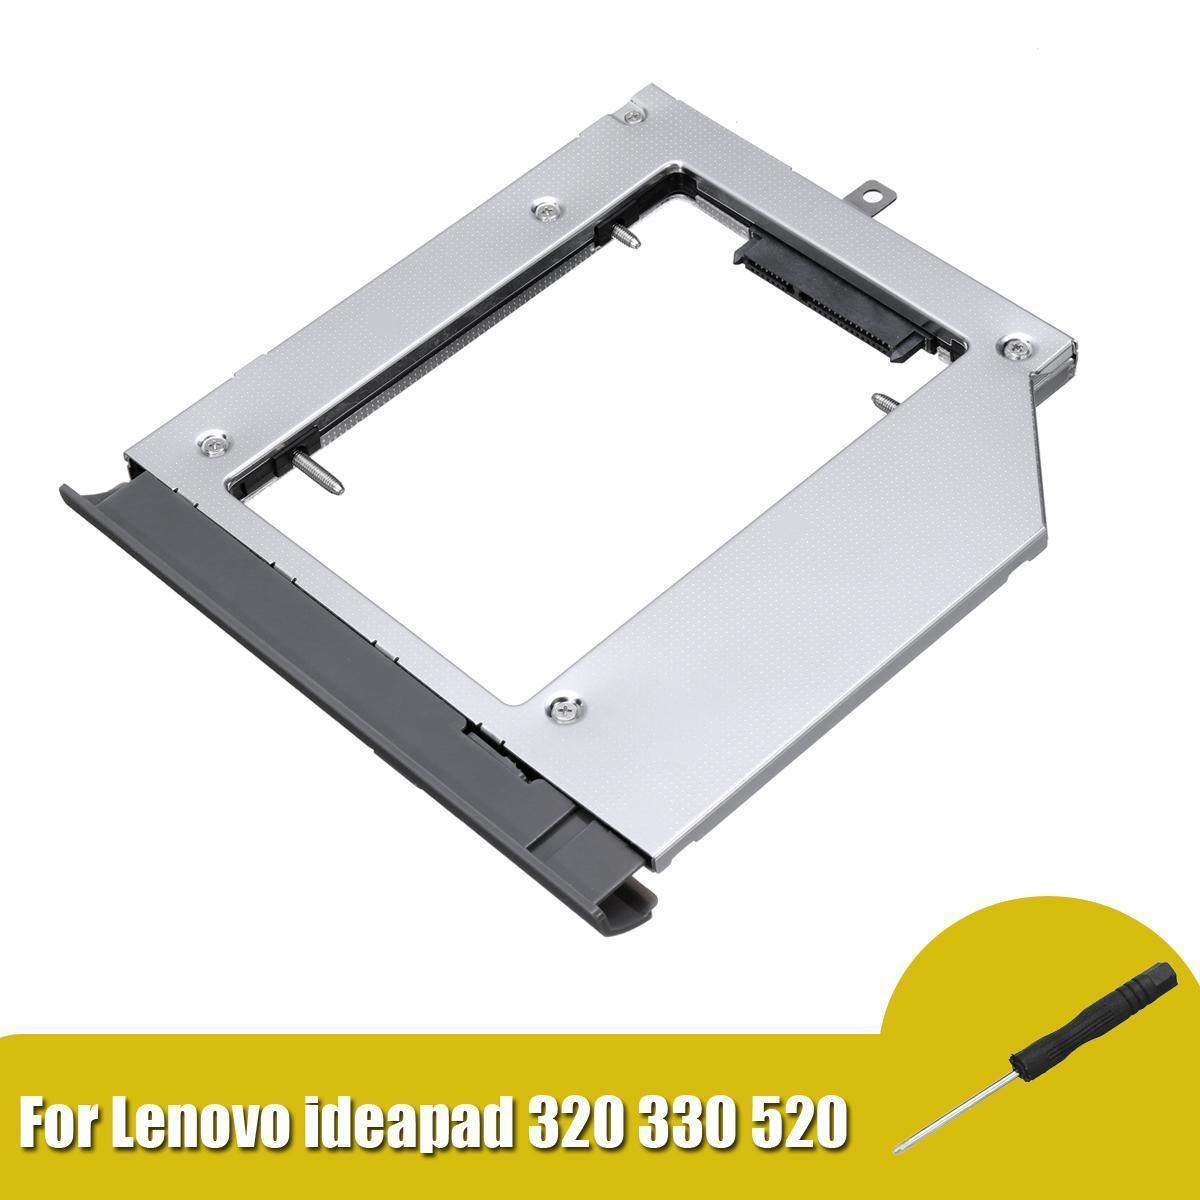 Optical Hard Drive Bay Cd-Rom Caddy Case For Notebook ideapad 320 330 520